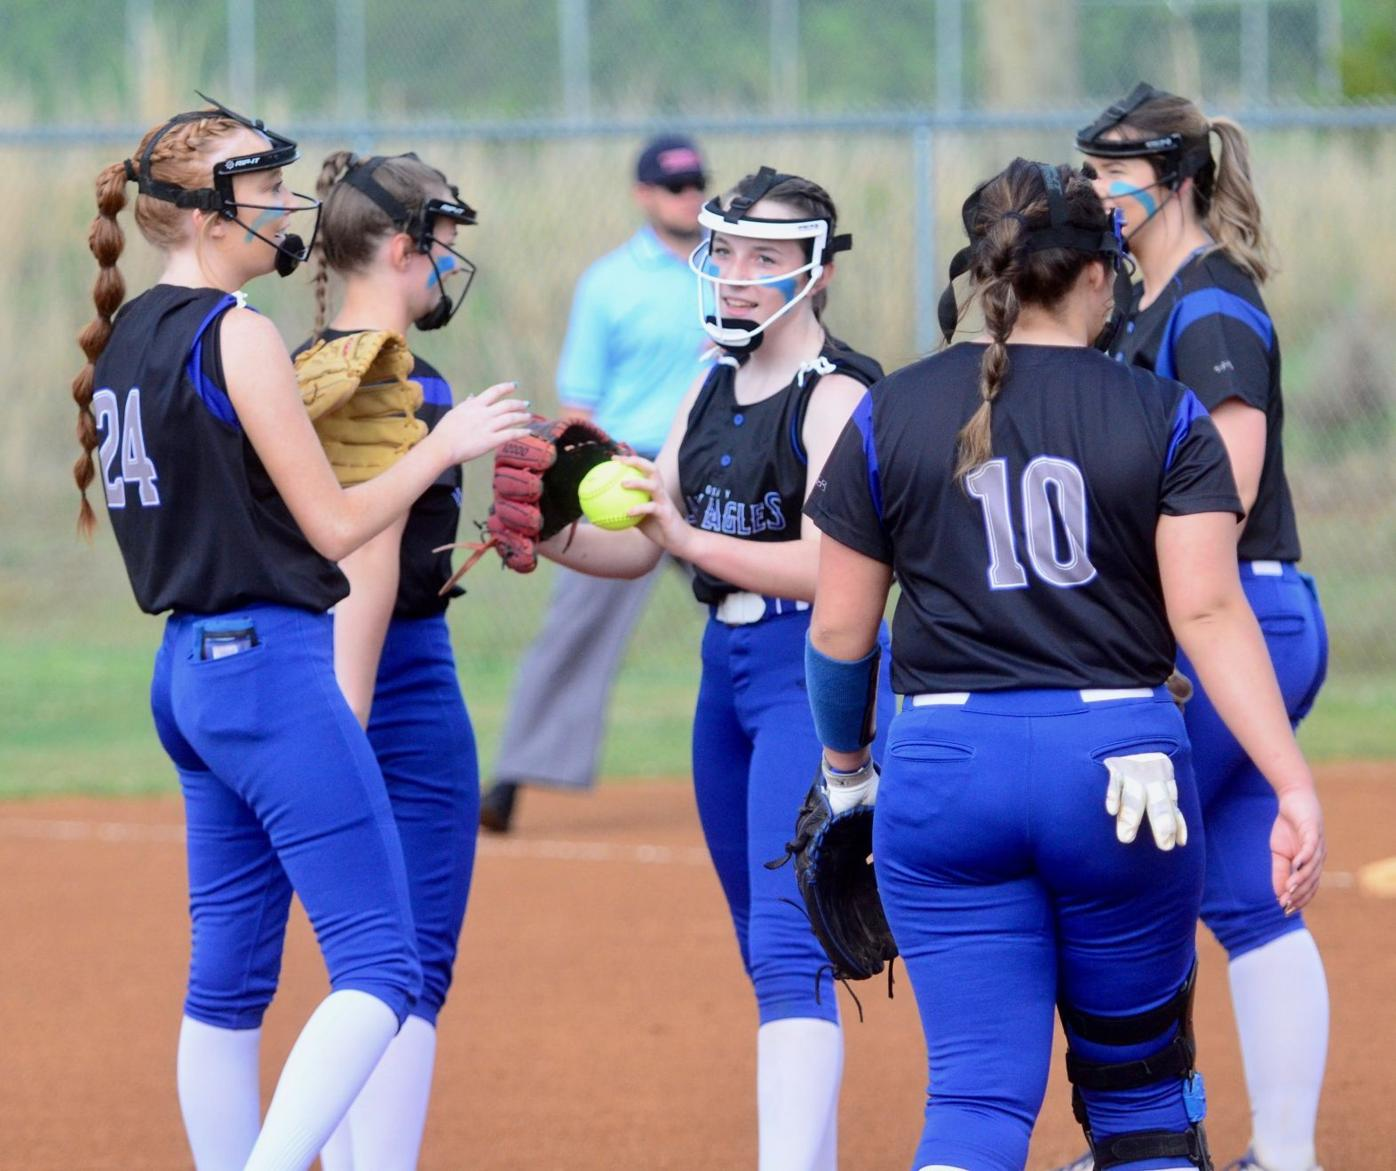 Lady Eagles infield